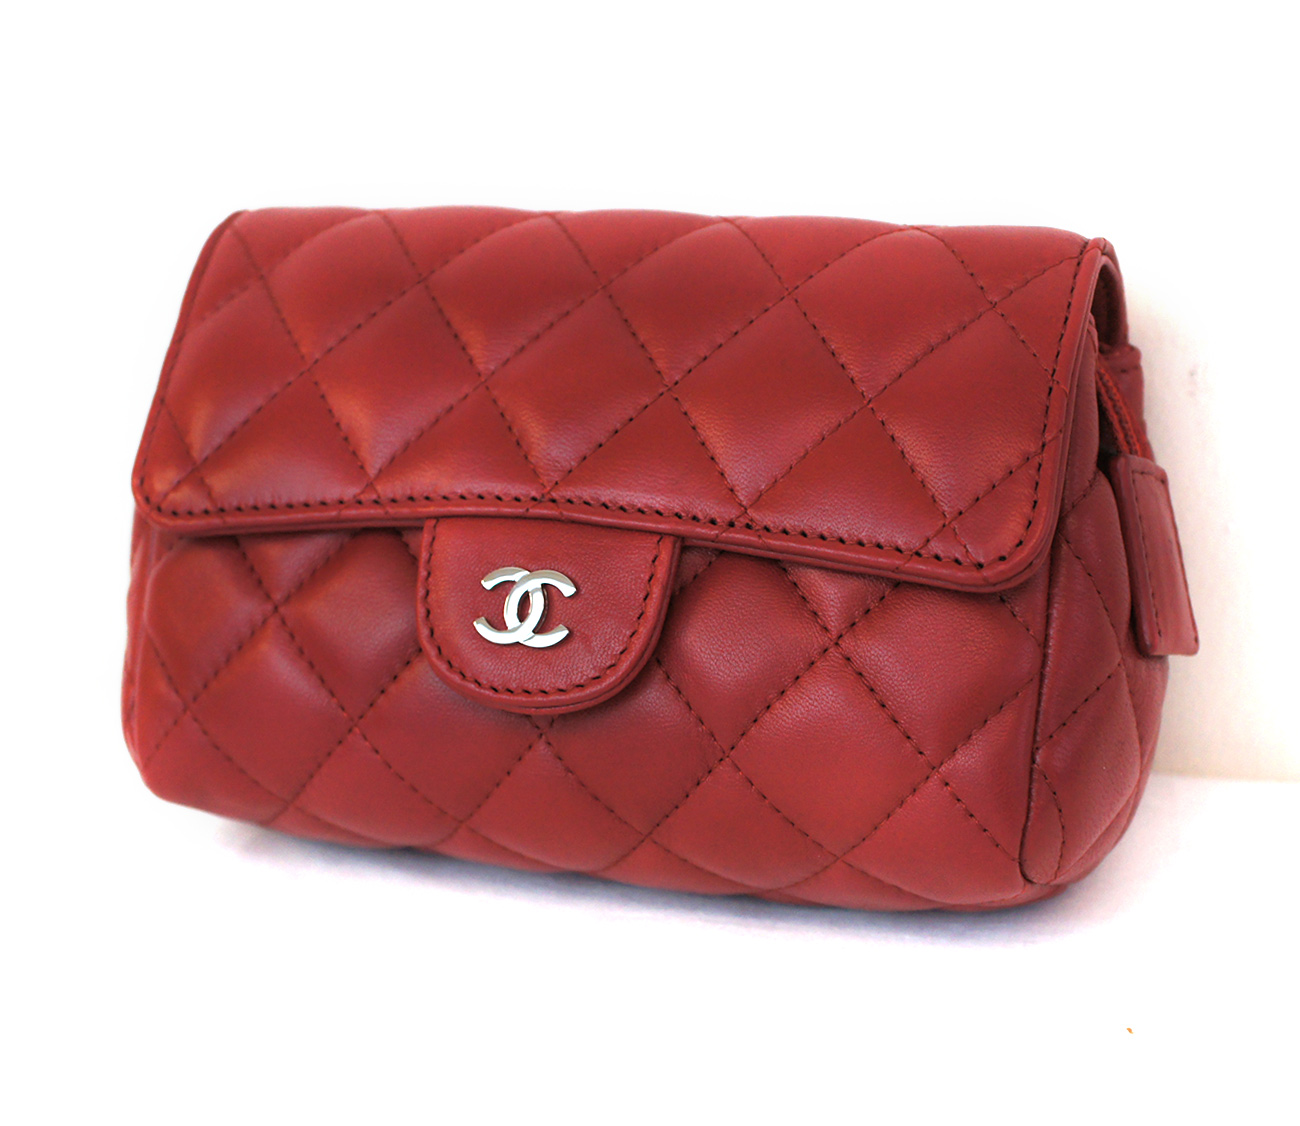 78cee54db22ab5 CHANEL 2016 Quilted Cosmetic Pouch Red | 4idee.com